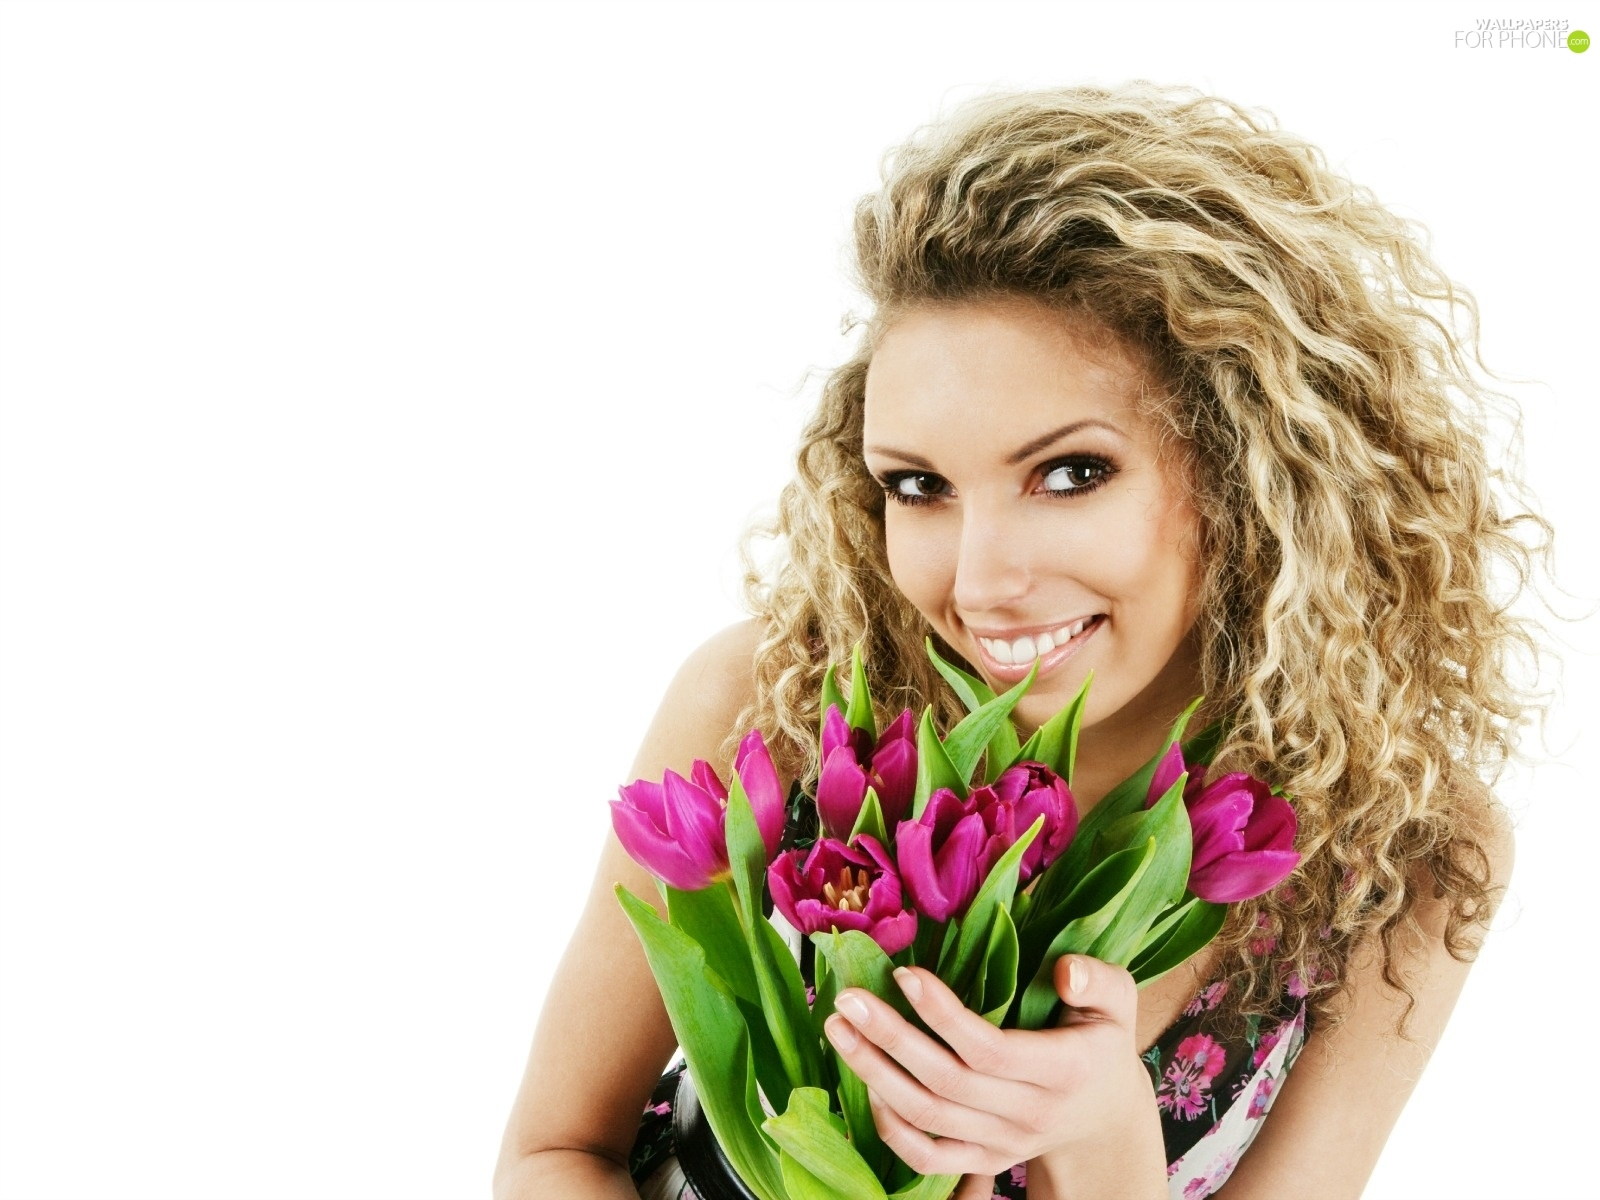 Blonde, tulips, Smile, bouquet